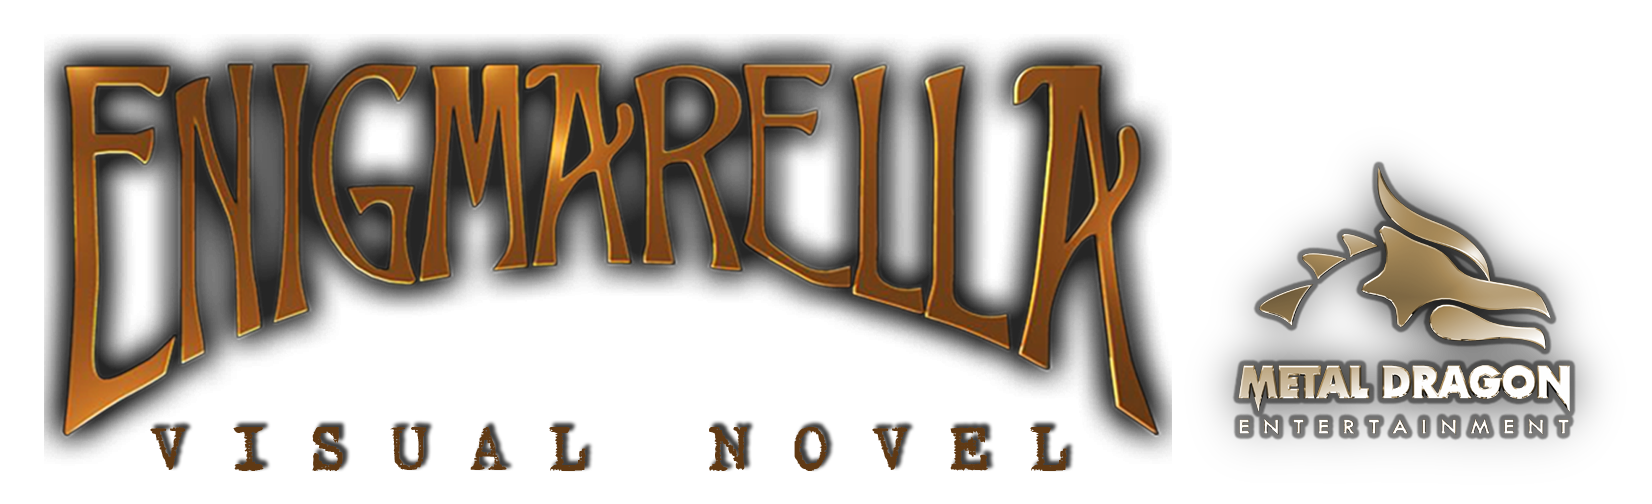 Enigmarella, a visual novel in a nautical steampunk setting follows the story of Alice, an orphan forced into marriage amidst murder, romance, friendship and medical experiments.